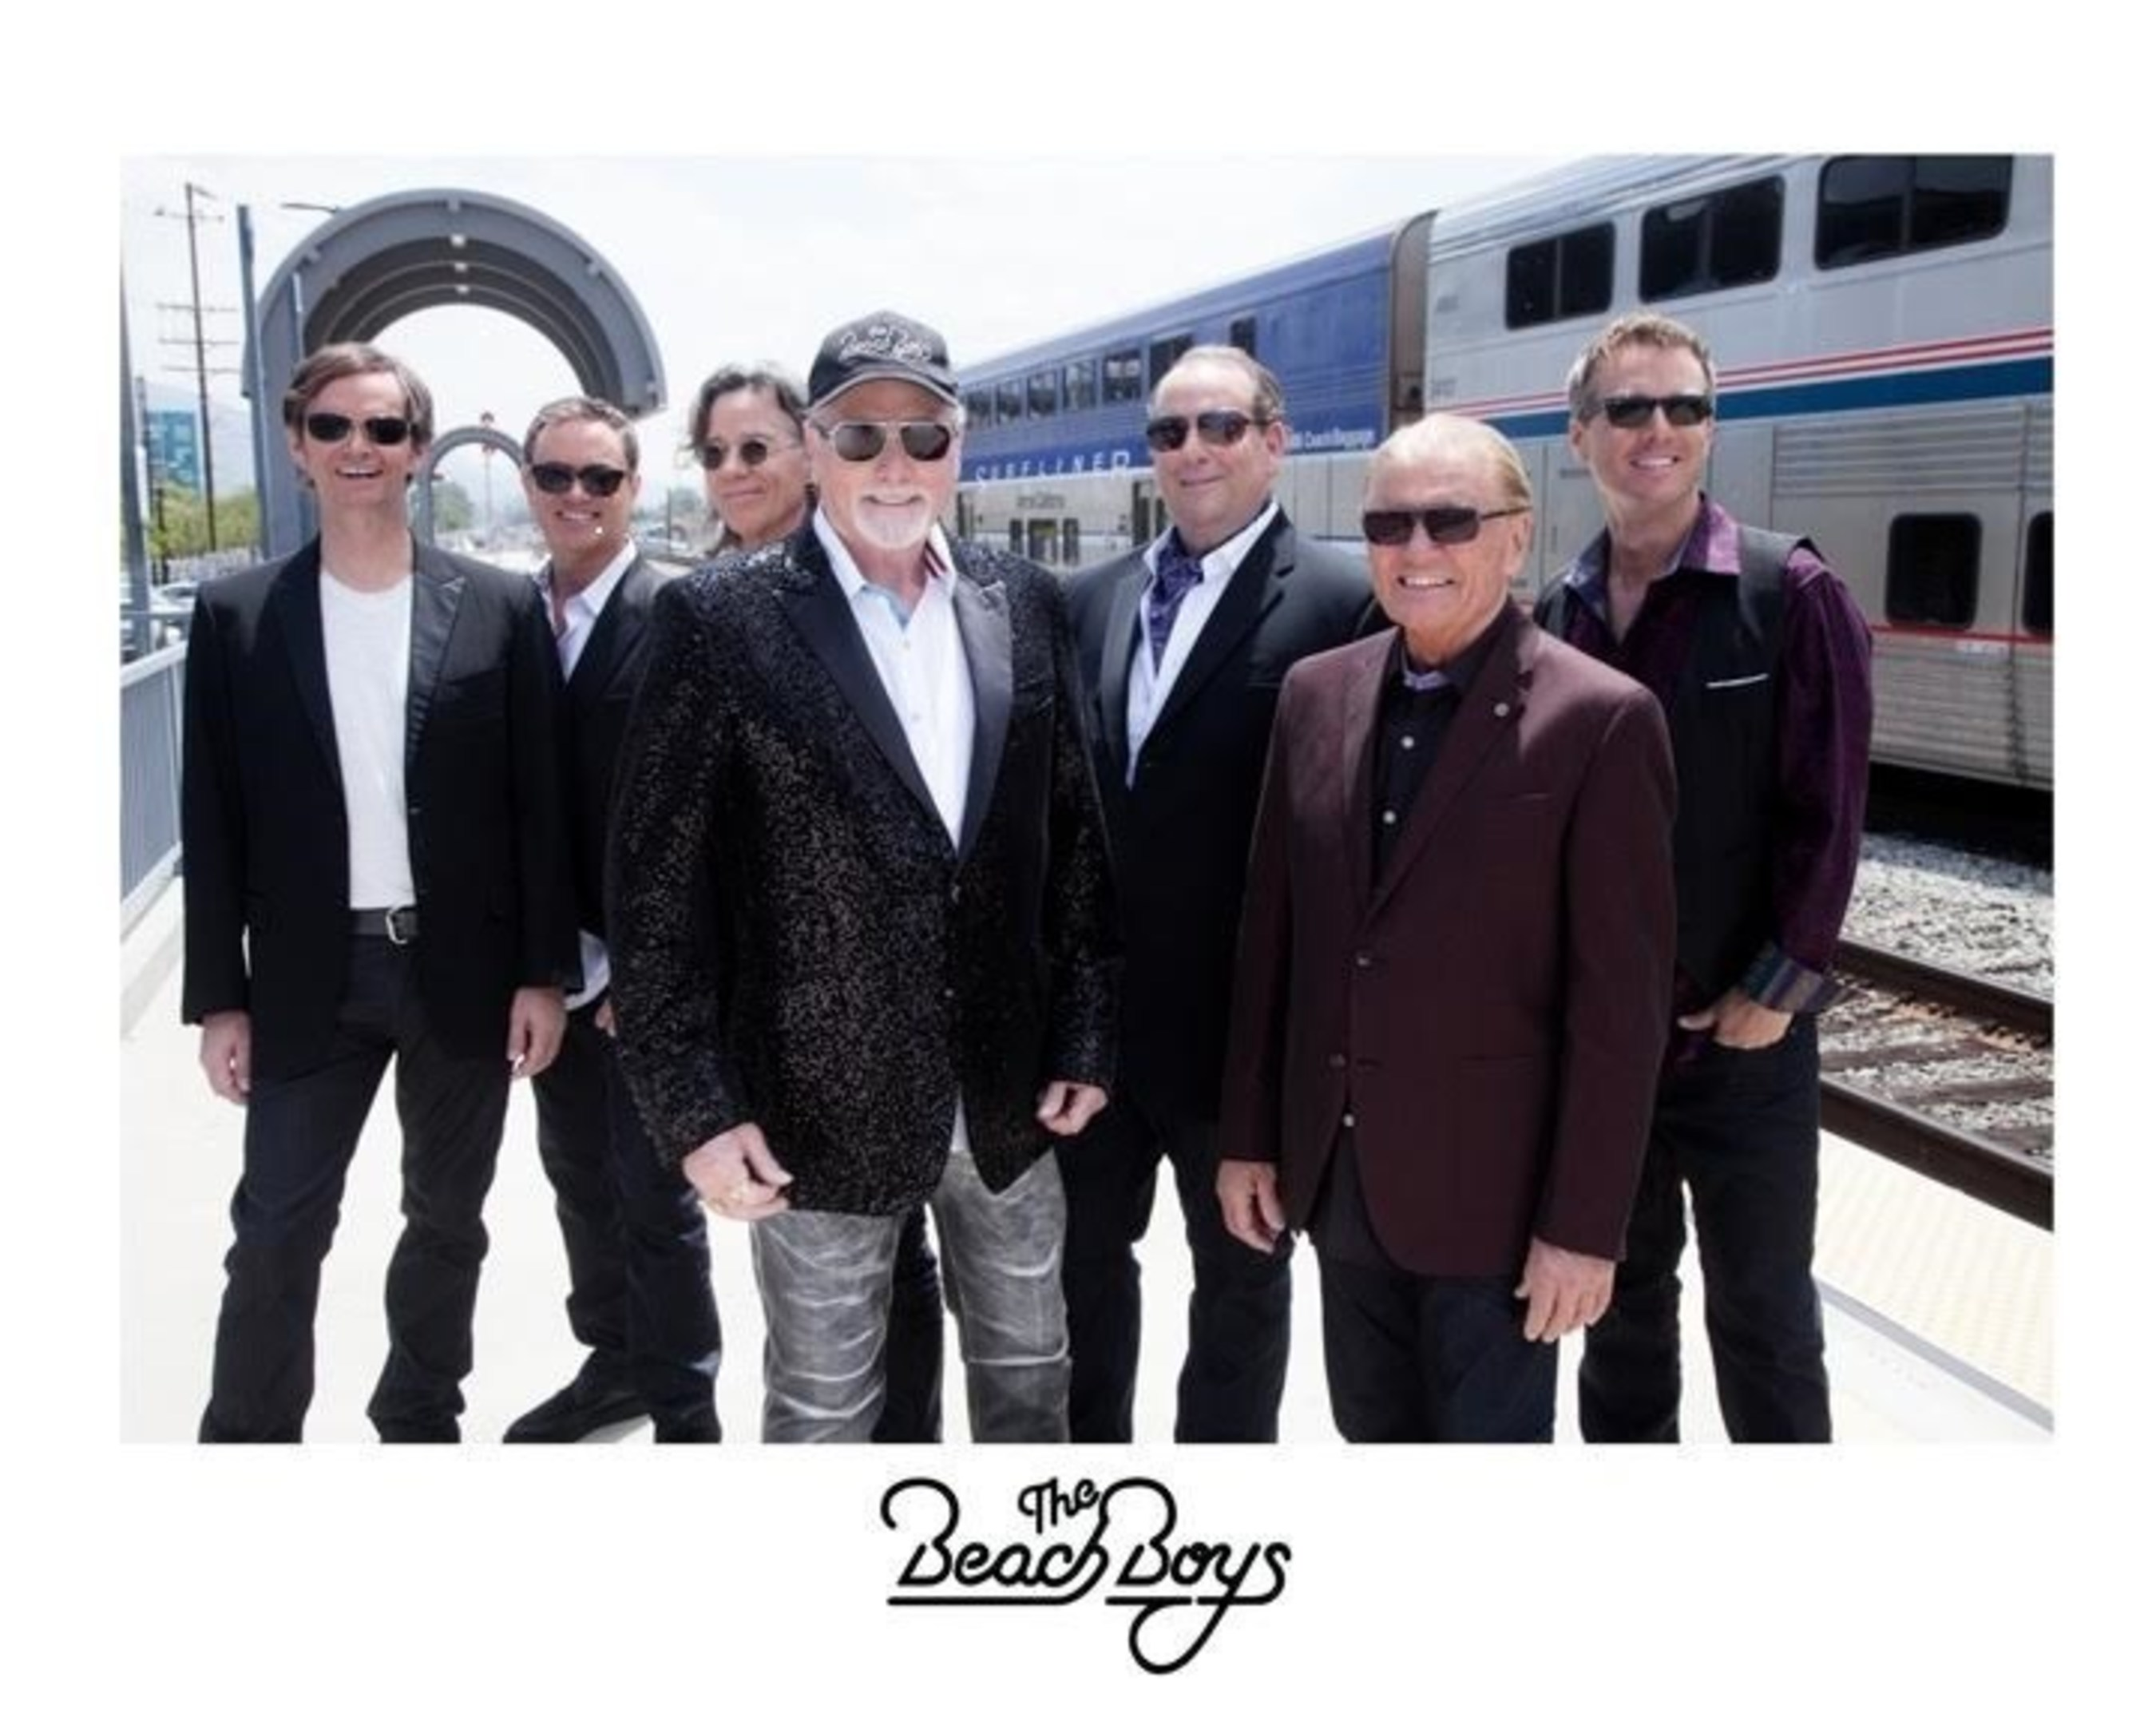 The Beach Boys to perform at the North American International Auto Show Charity Preview on Friday, January 13, 2017.